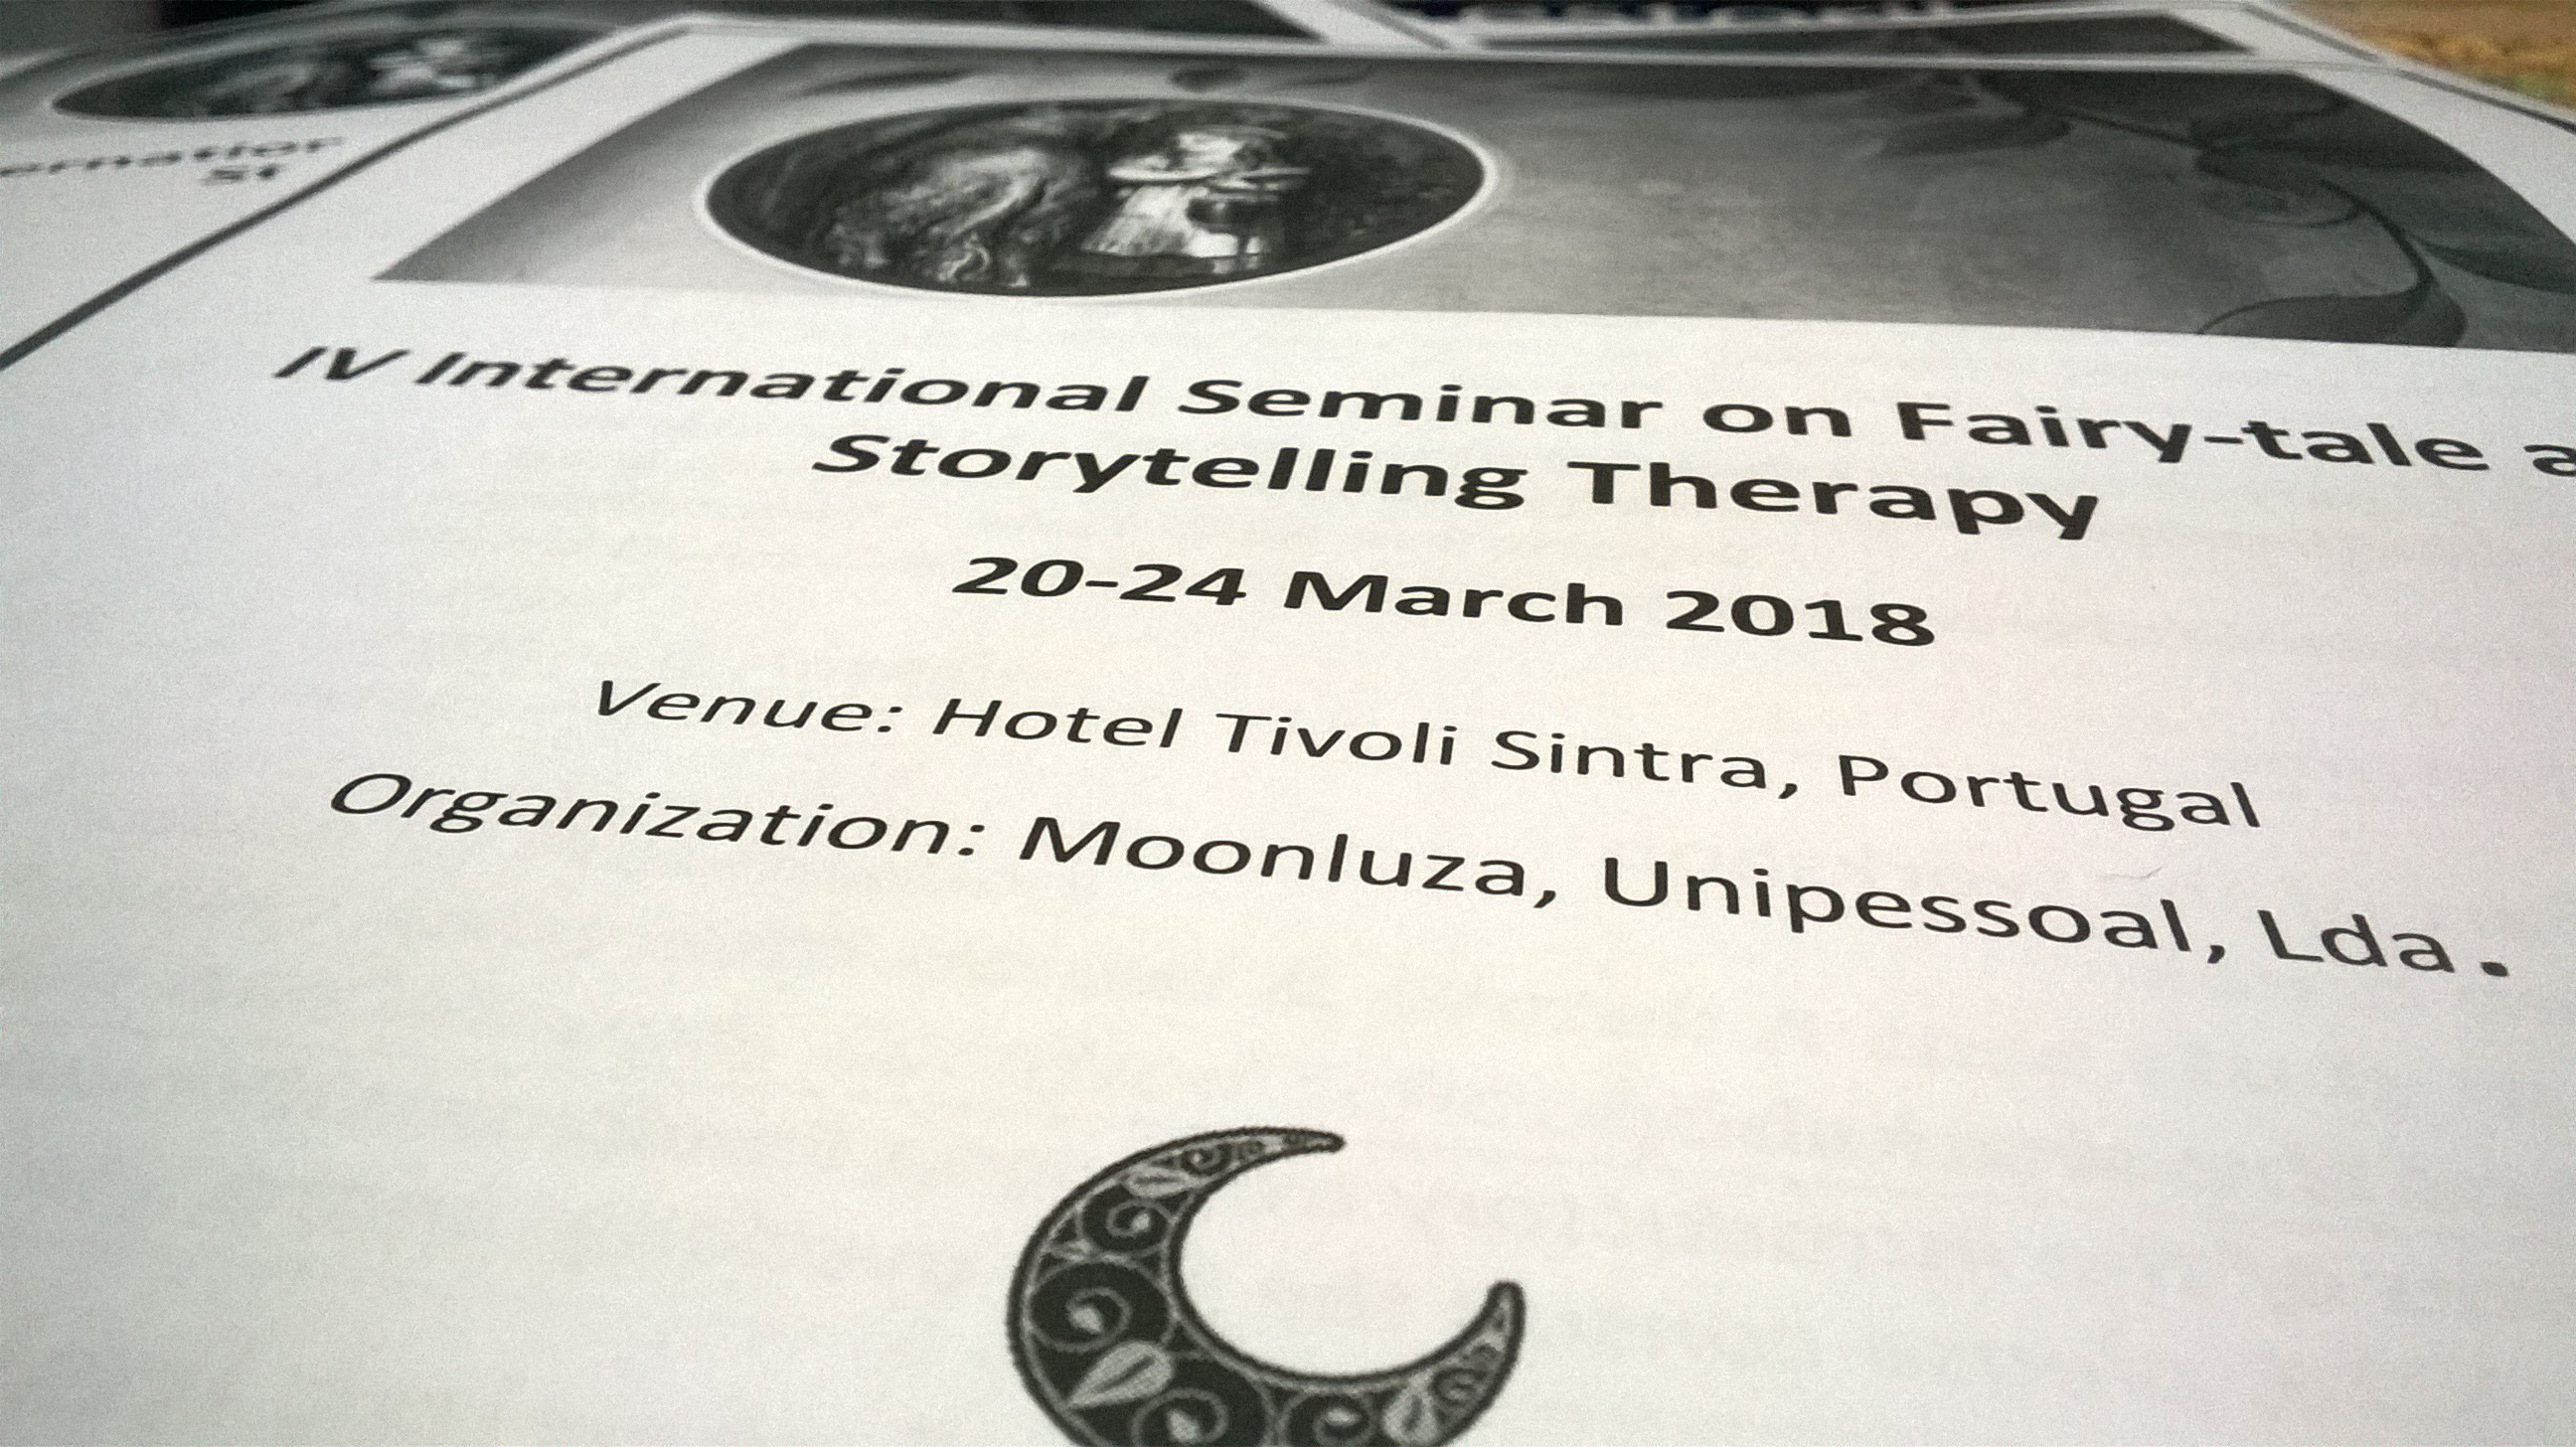 IV International Seminar on Fairy-tale and Storytelling Therapy- March 2018